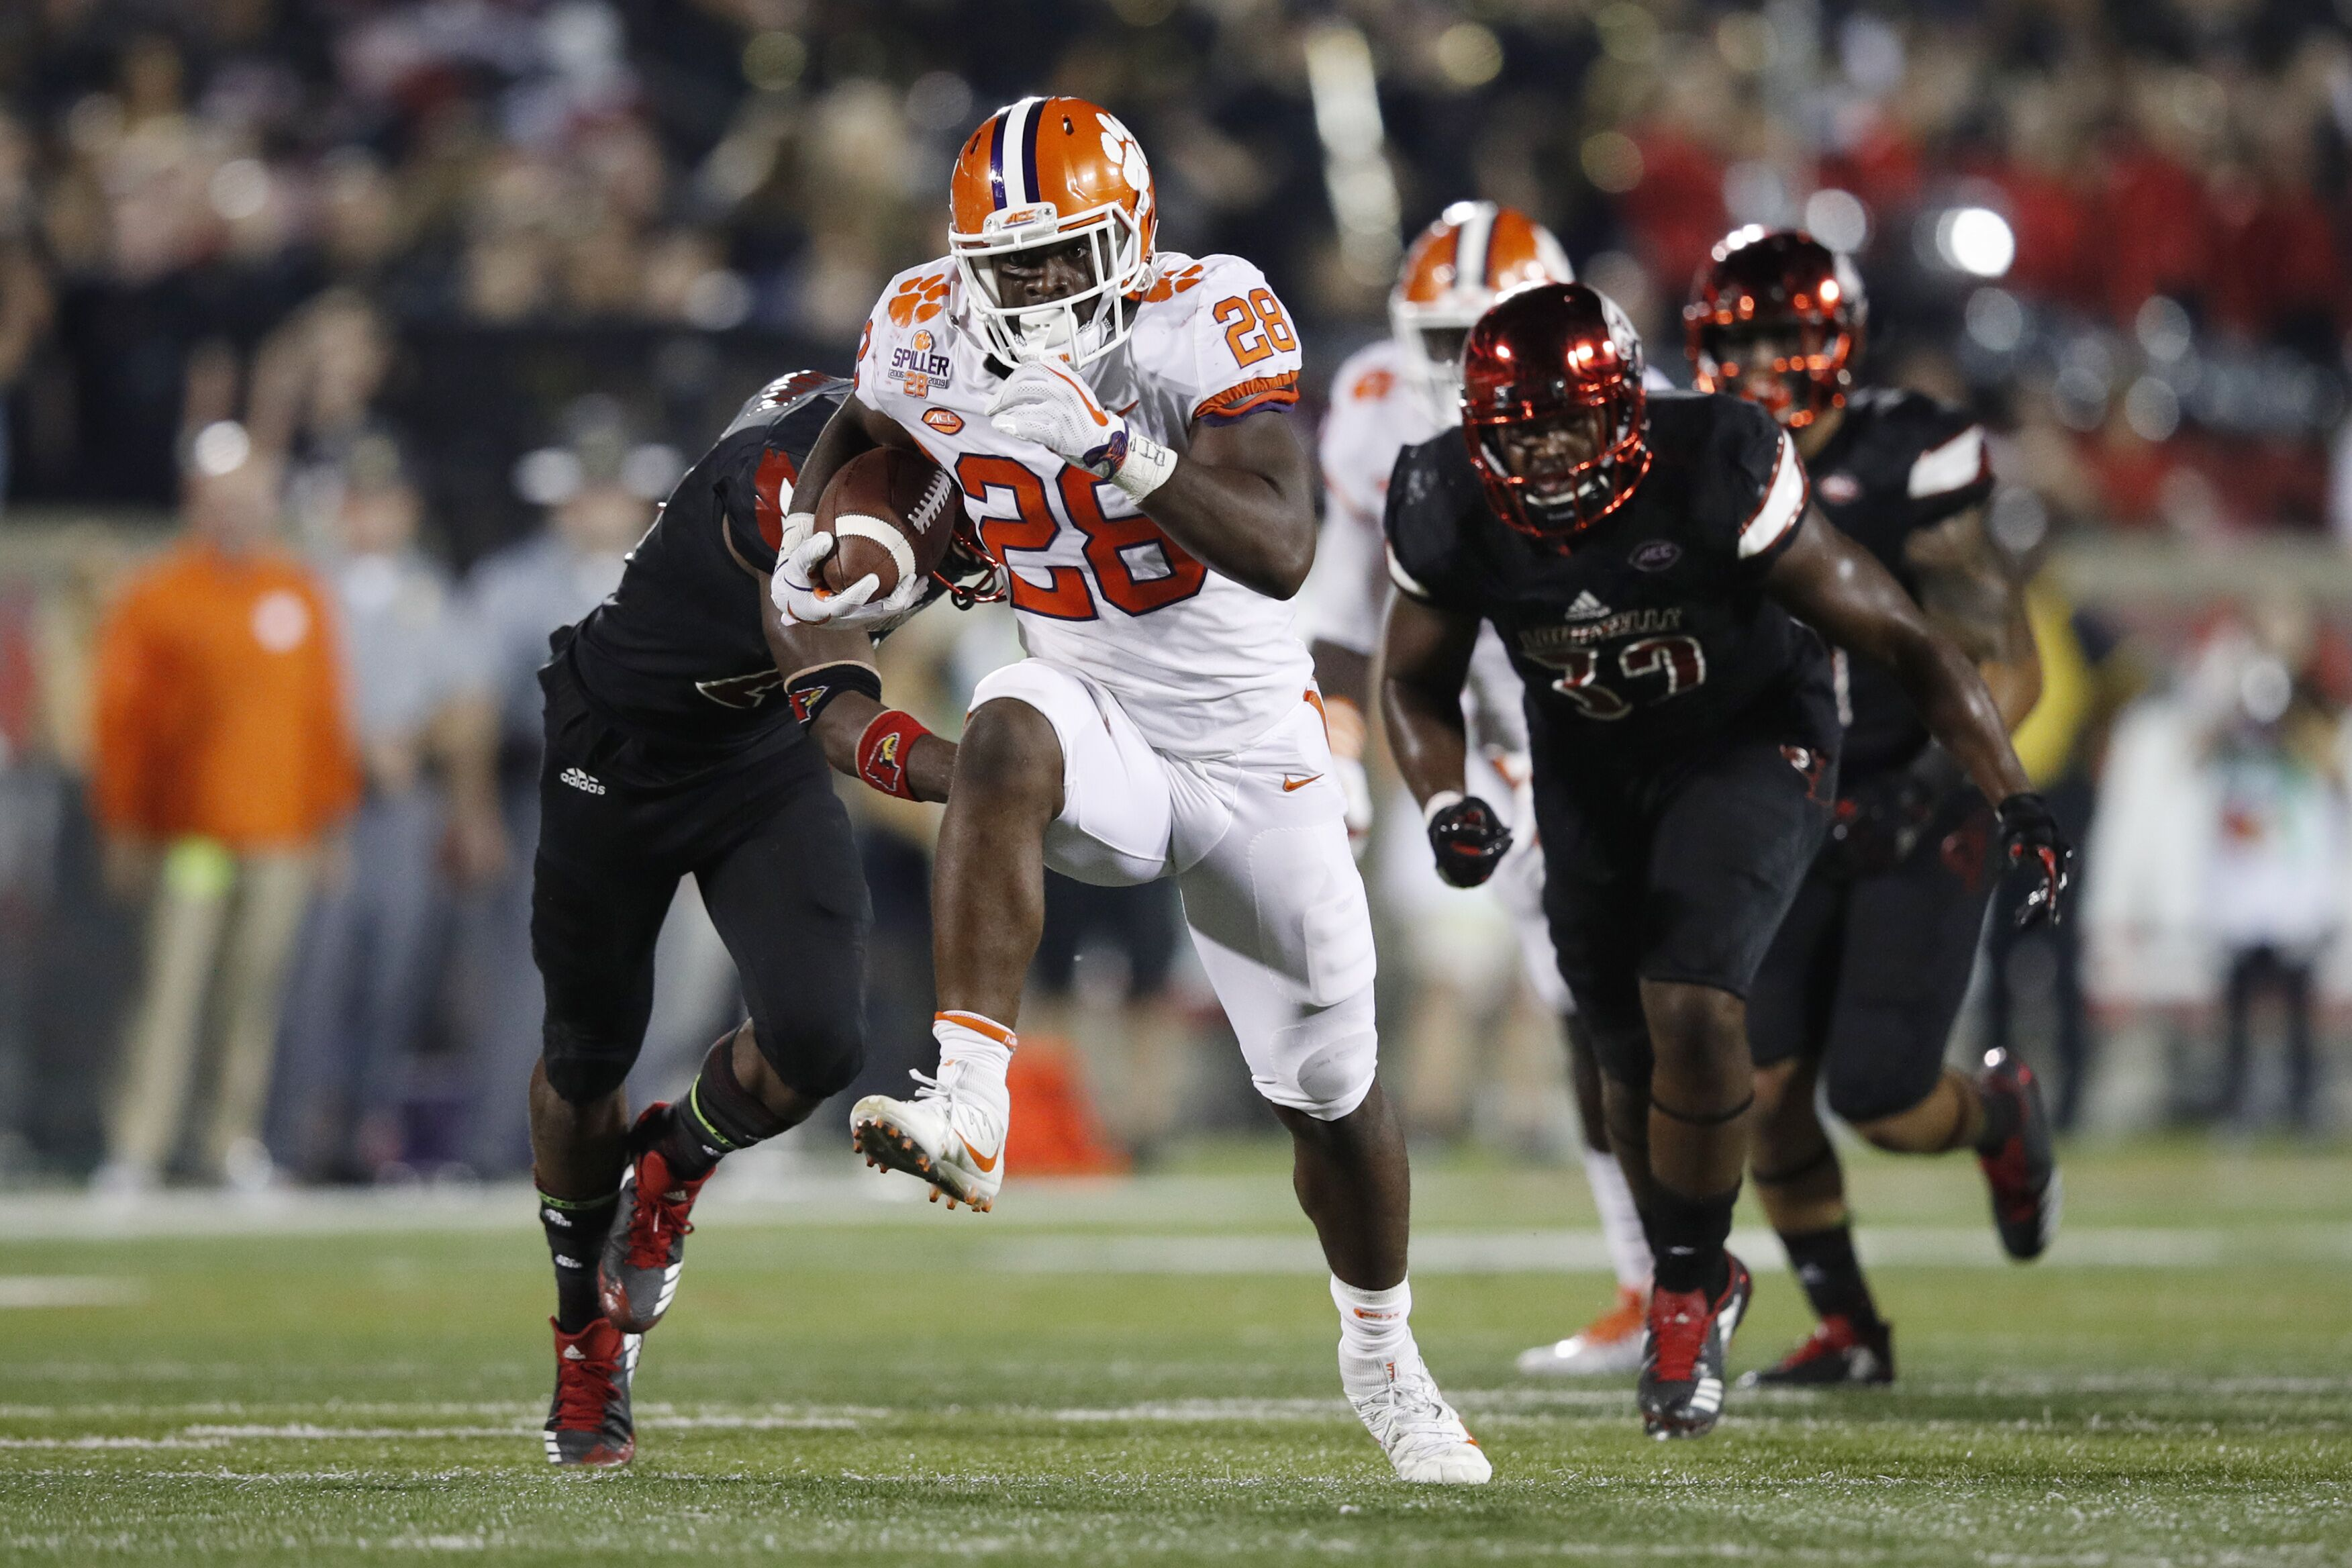 Need Clemson Tigers Football Tickets TicketCity offers 100 moneyback guarantee uptodate prices amp event information Over 1 million customers served since 1990!